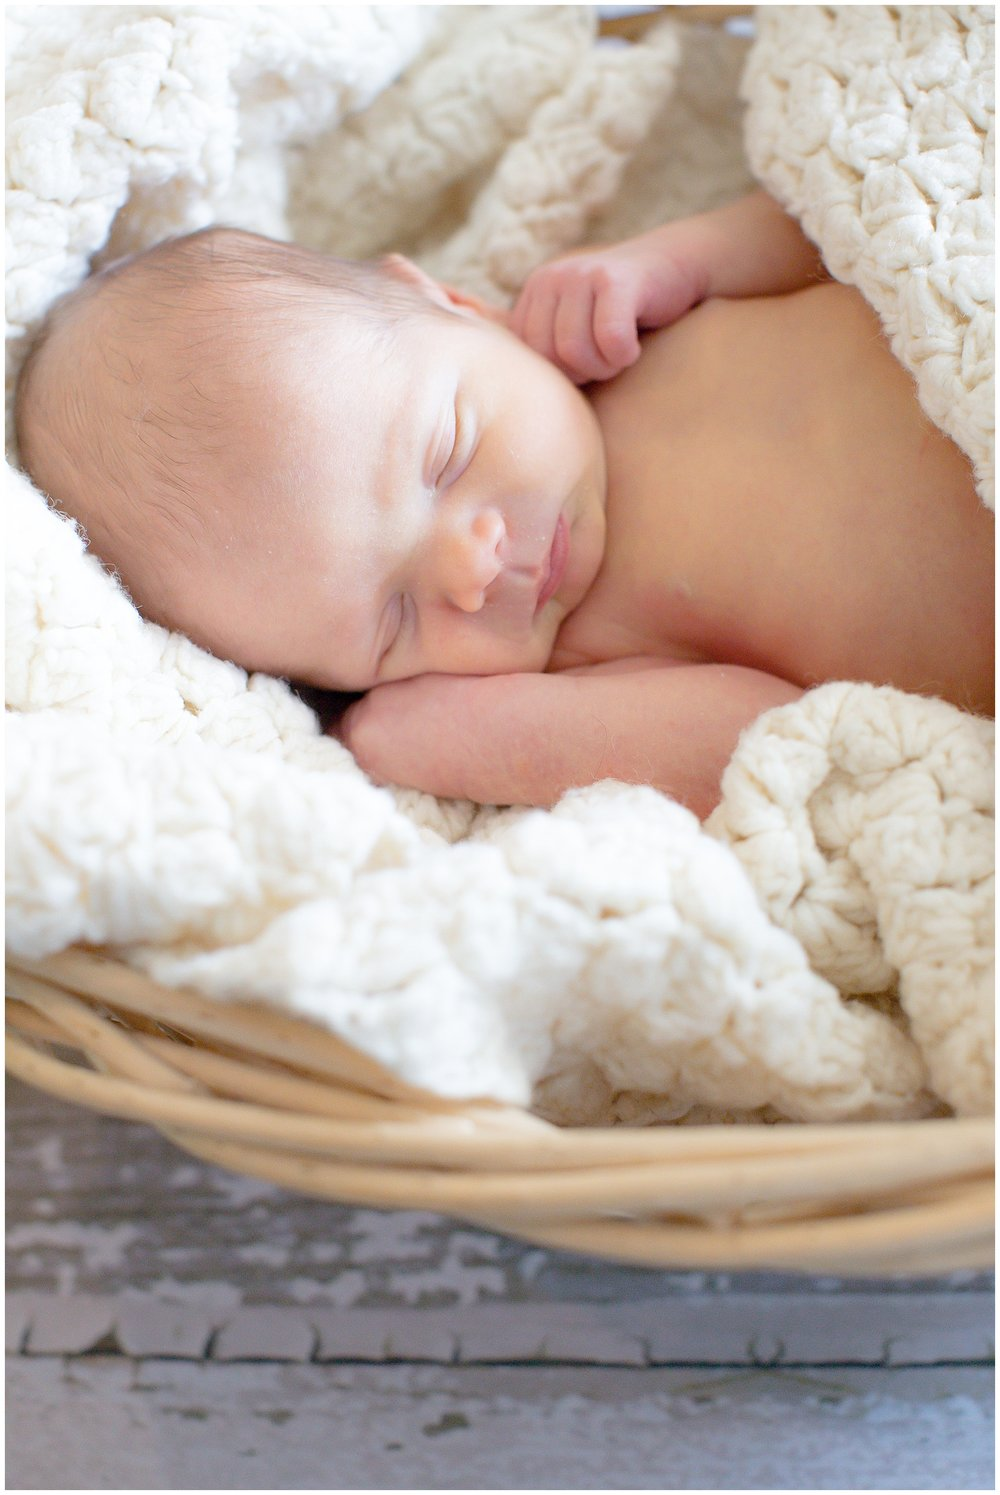 posed_newbornsession_0017.jpg